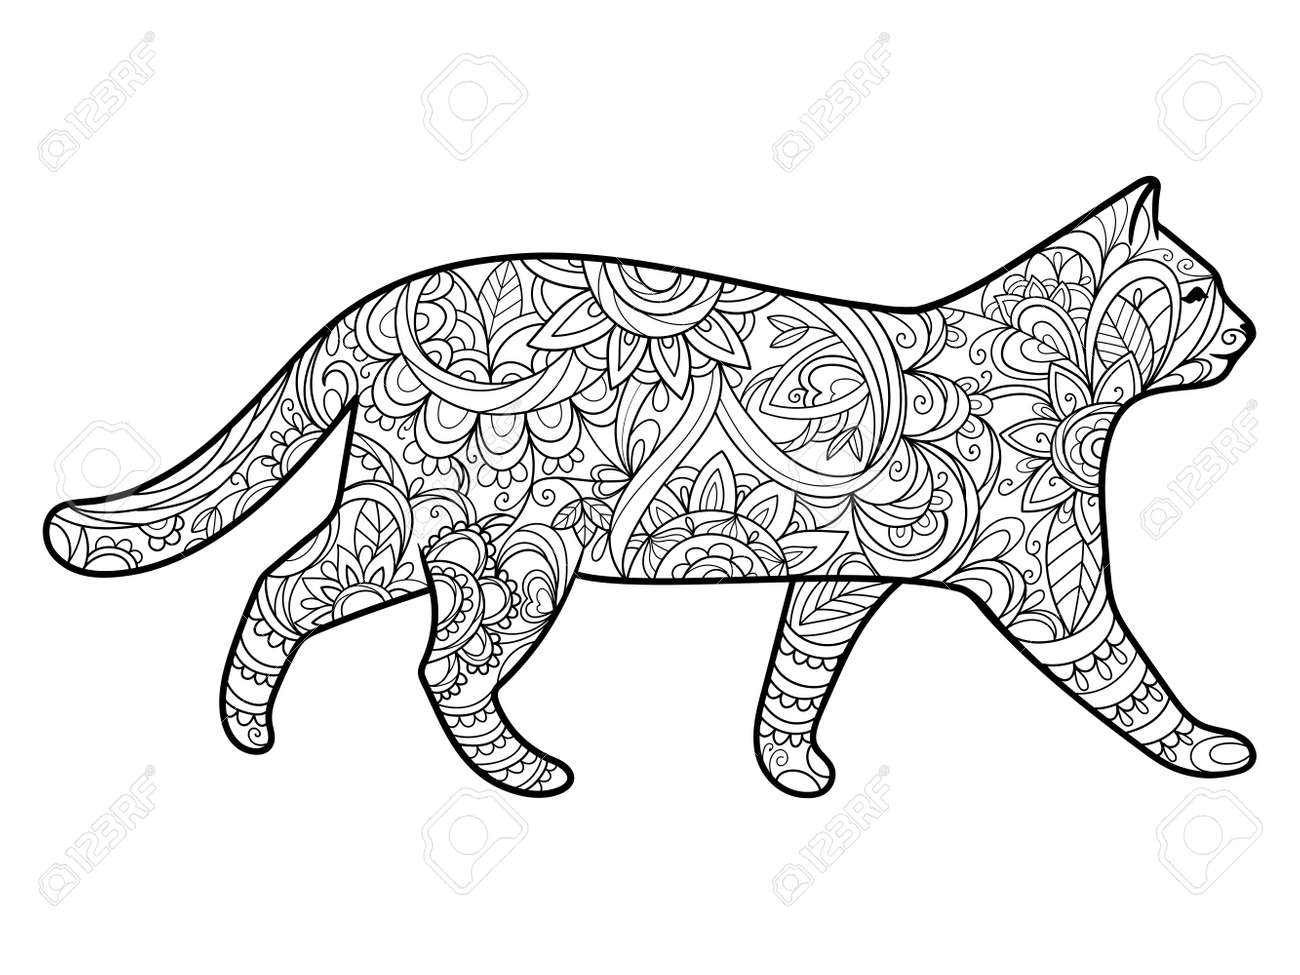 Cat Coloring Book For Adults Illustration. Anti-stress Coloring ...